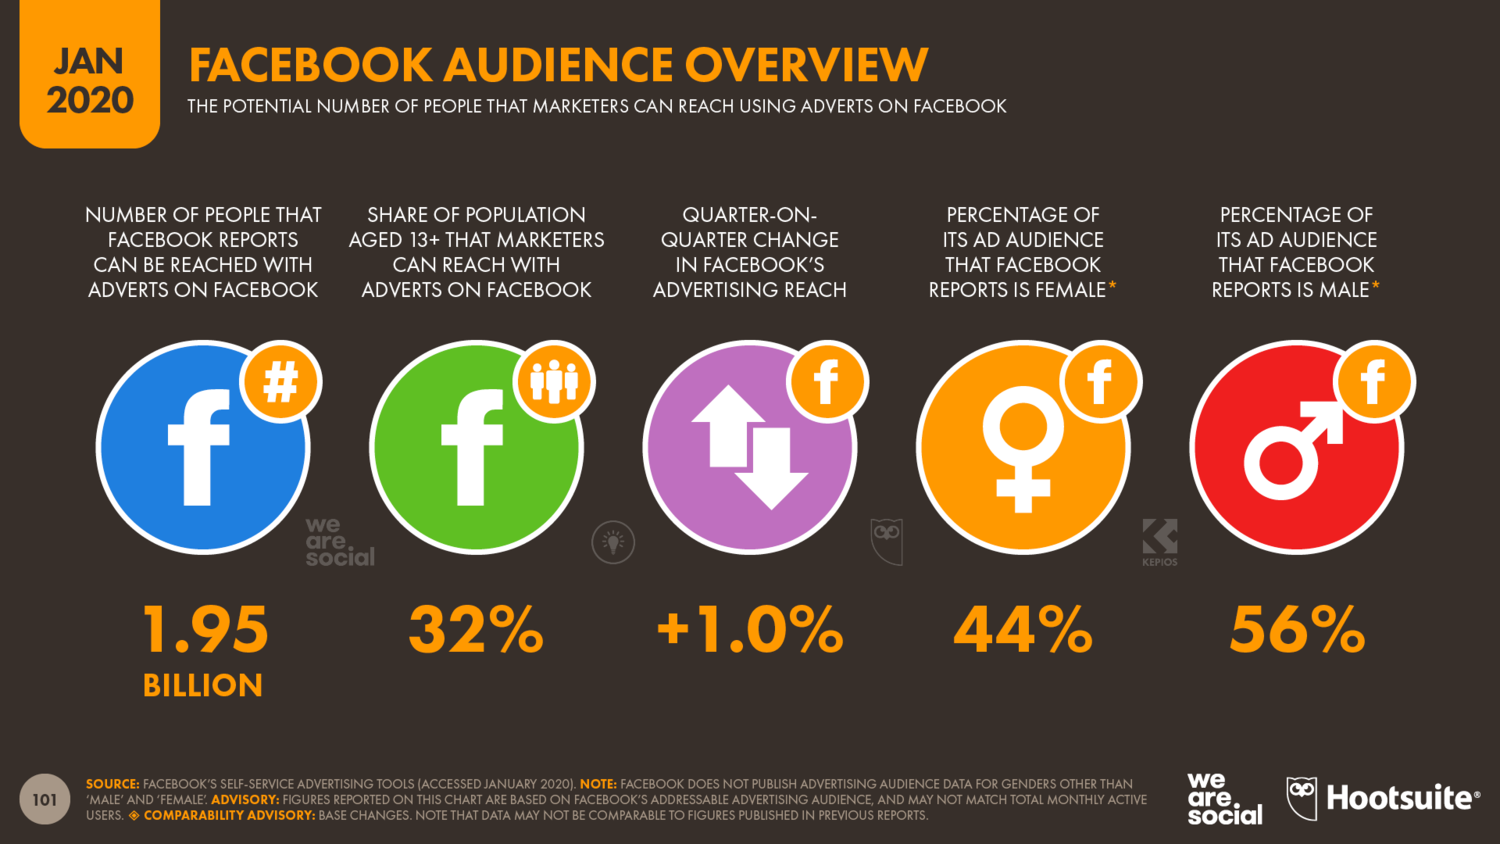 Overview+of+Facebook's+Advertising+Audience+January+2020+DataReportal